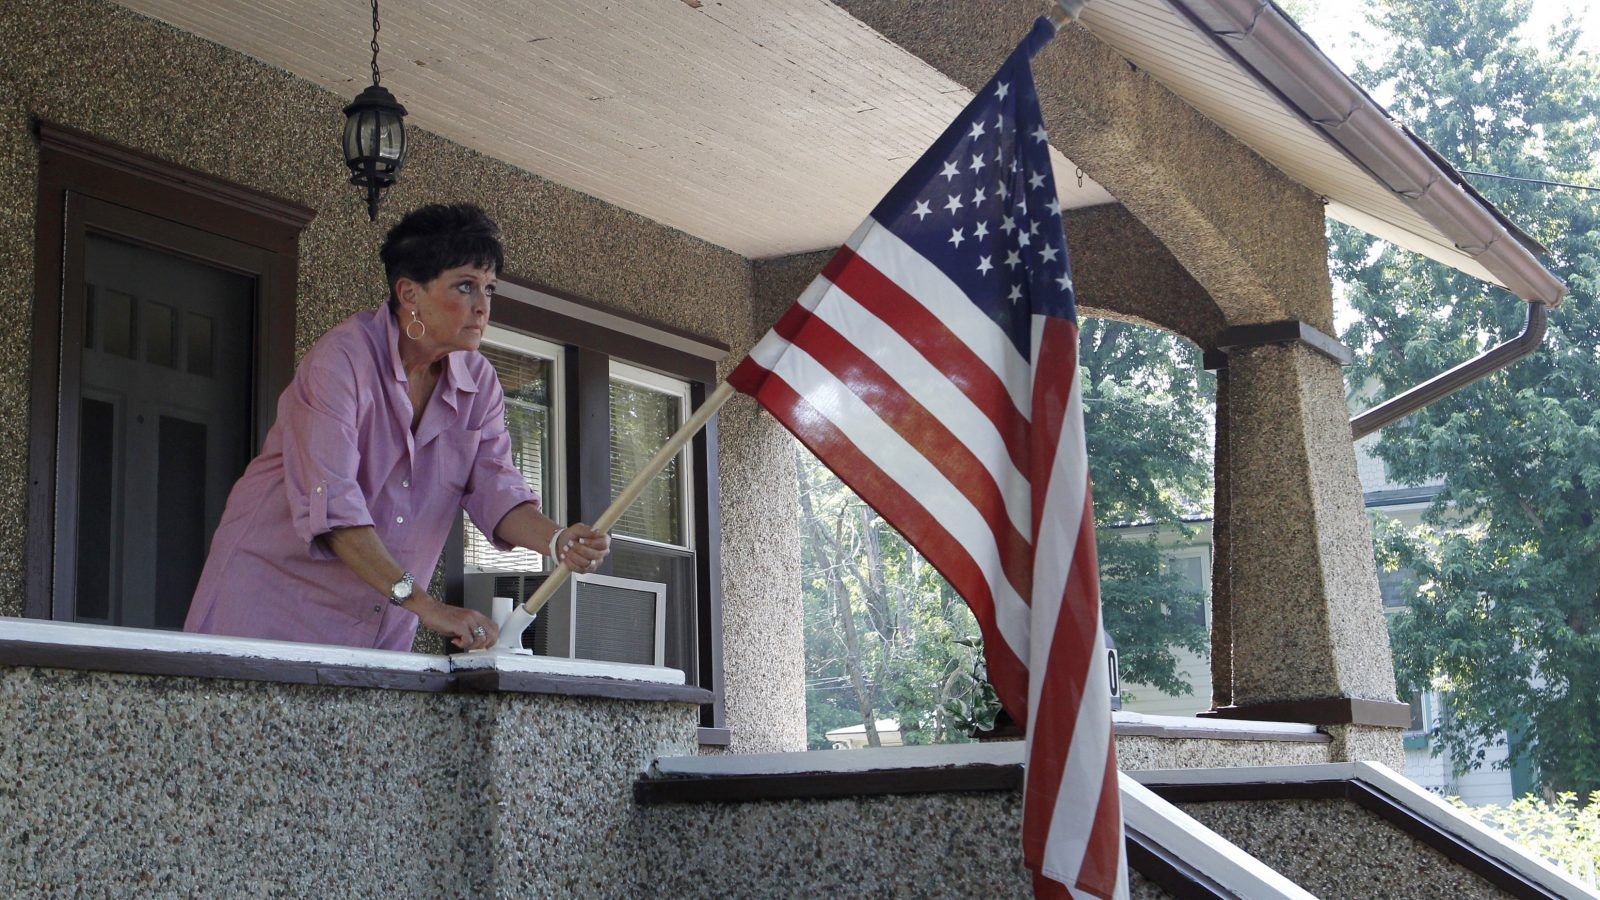 A woman places a US flag on her porch.